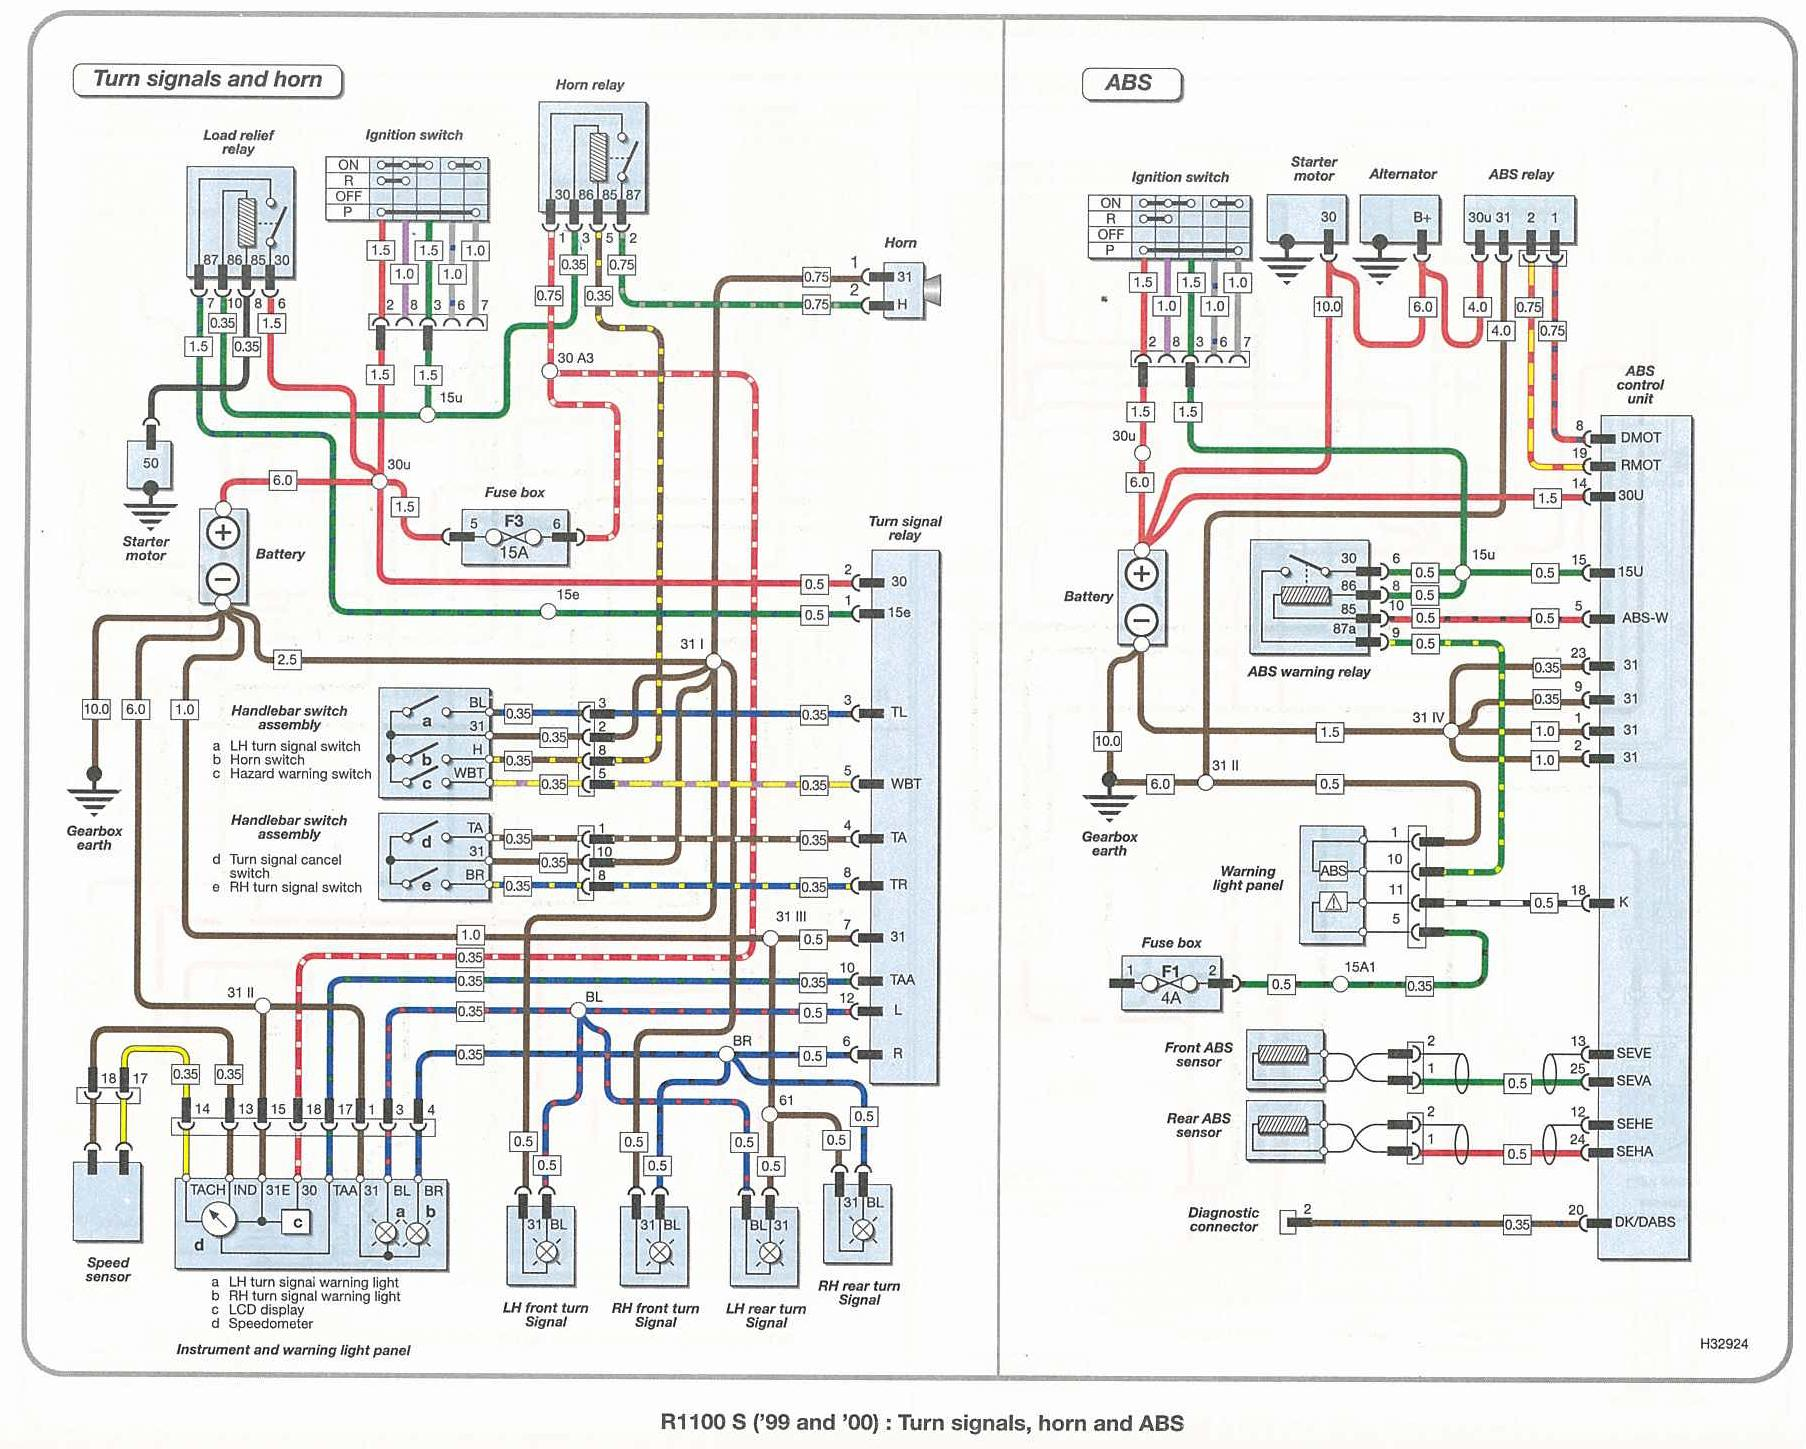 wiring03 bmw wiring diagram bmw wiring diagrams e39 \u2022 wiring diagrams j E46 Wiring Diagram PDF at mifinder.co